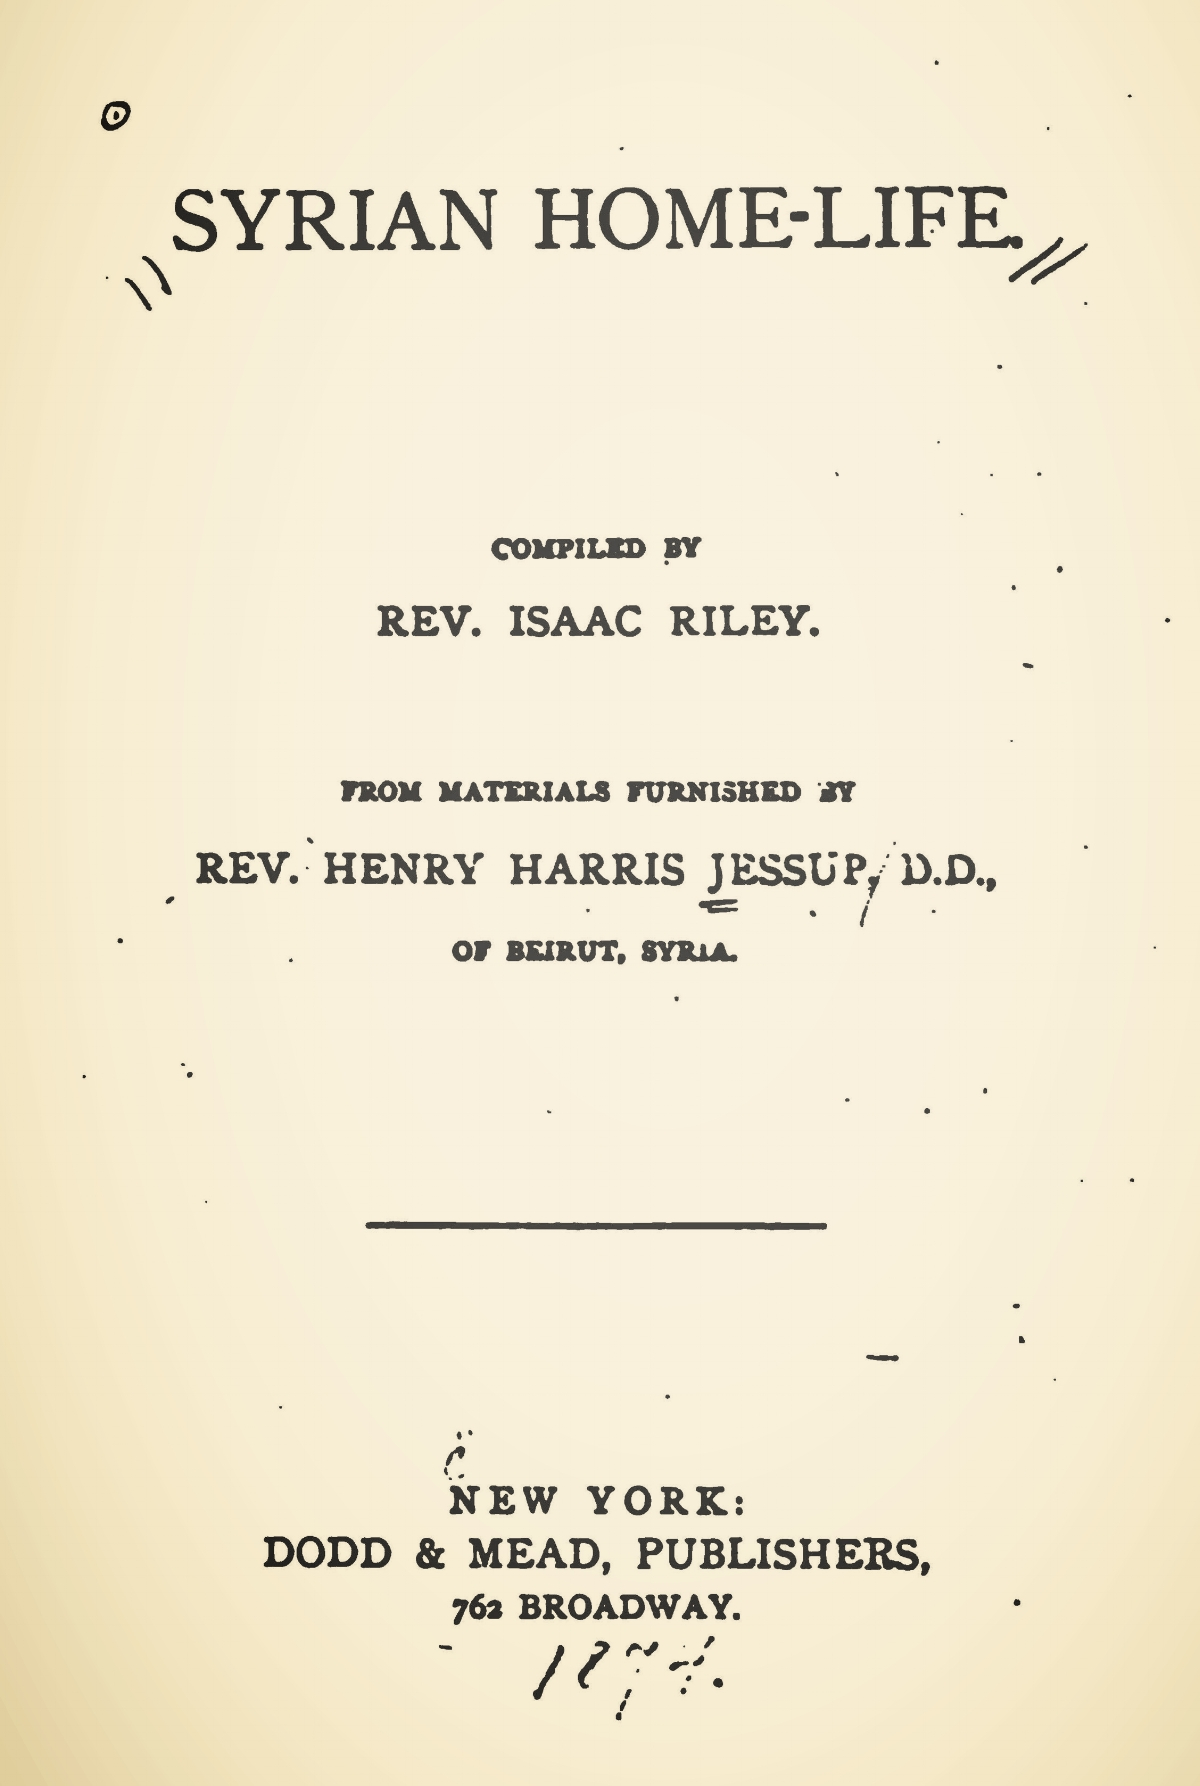 Jessup, Henry Harris, Syrian Home Life Title Page.jpg